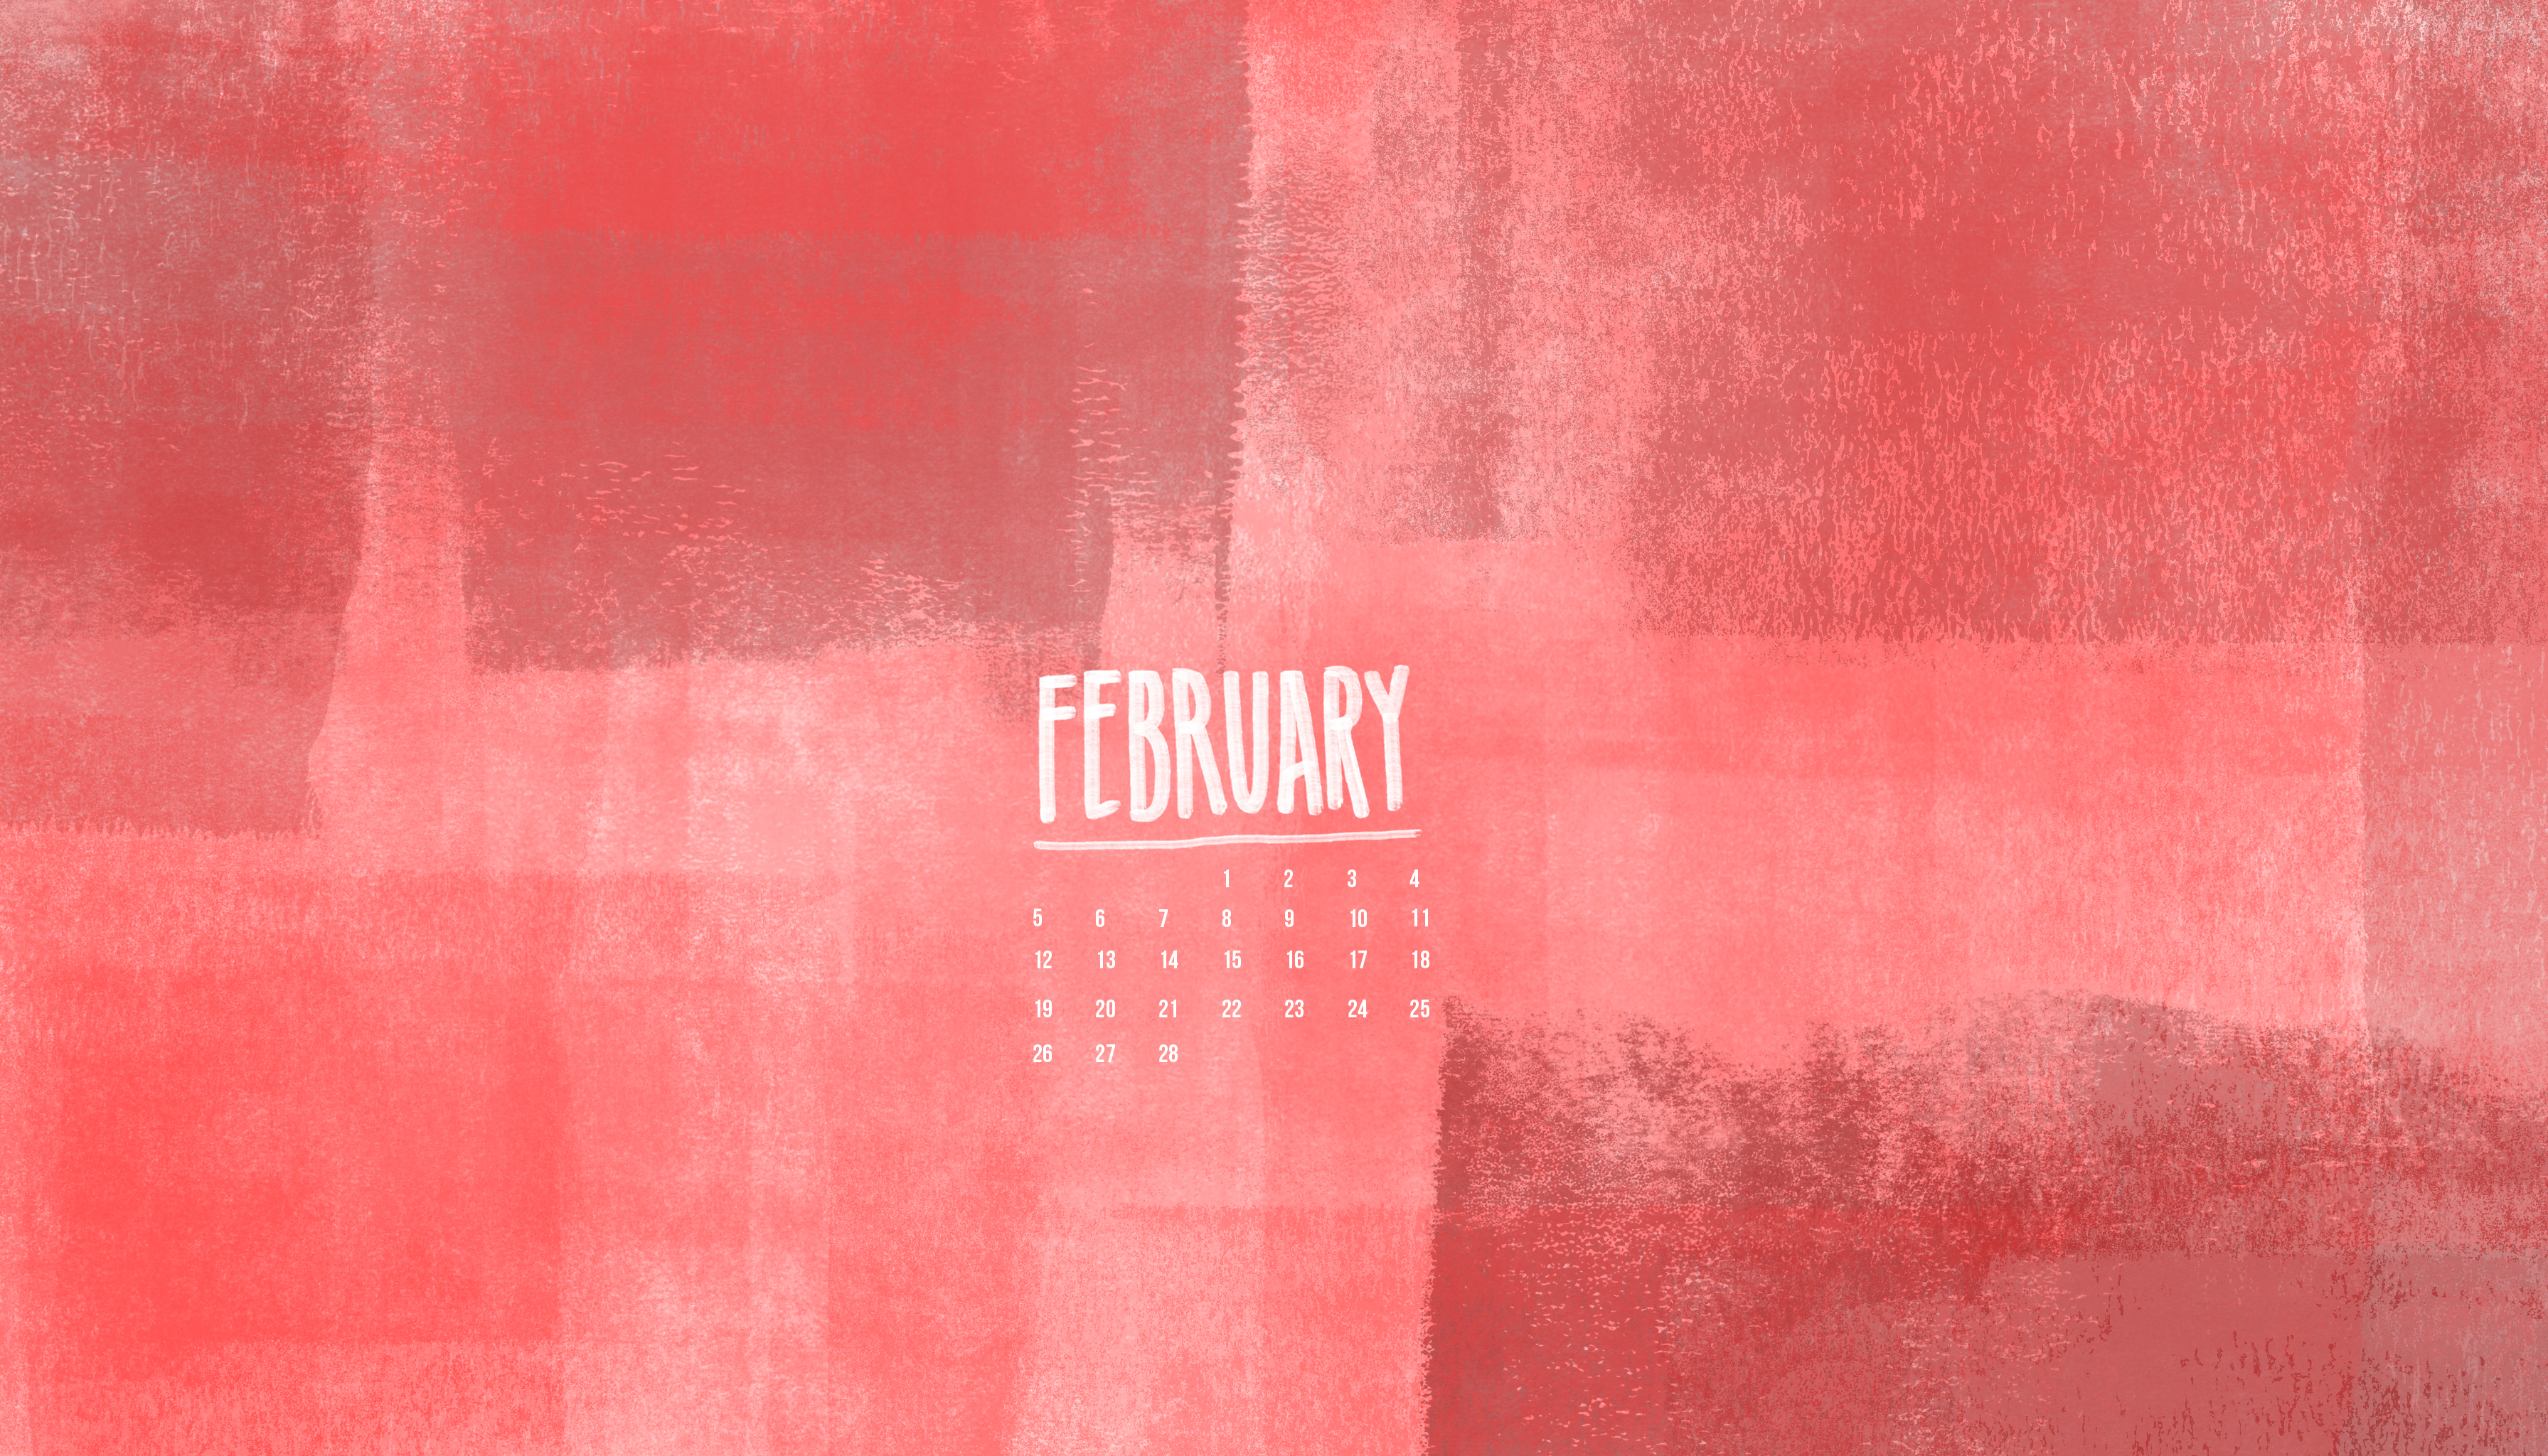 February 2017 Calendars and Wallpaper   Red Stamp 3583x2048